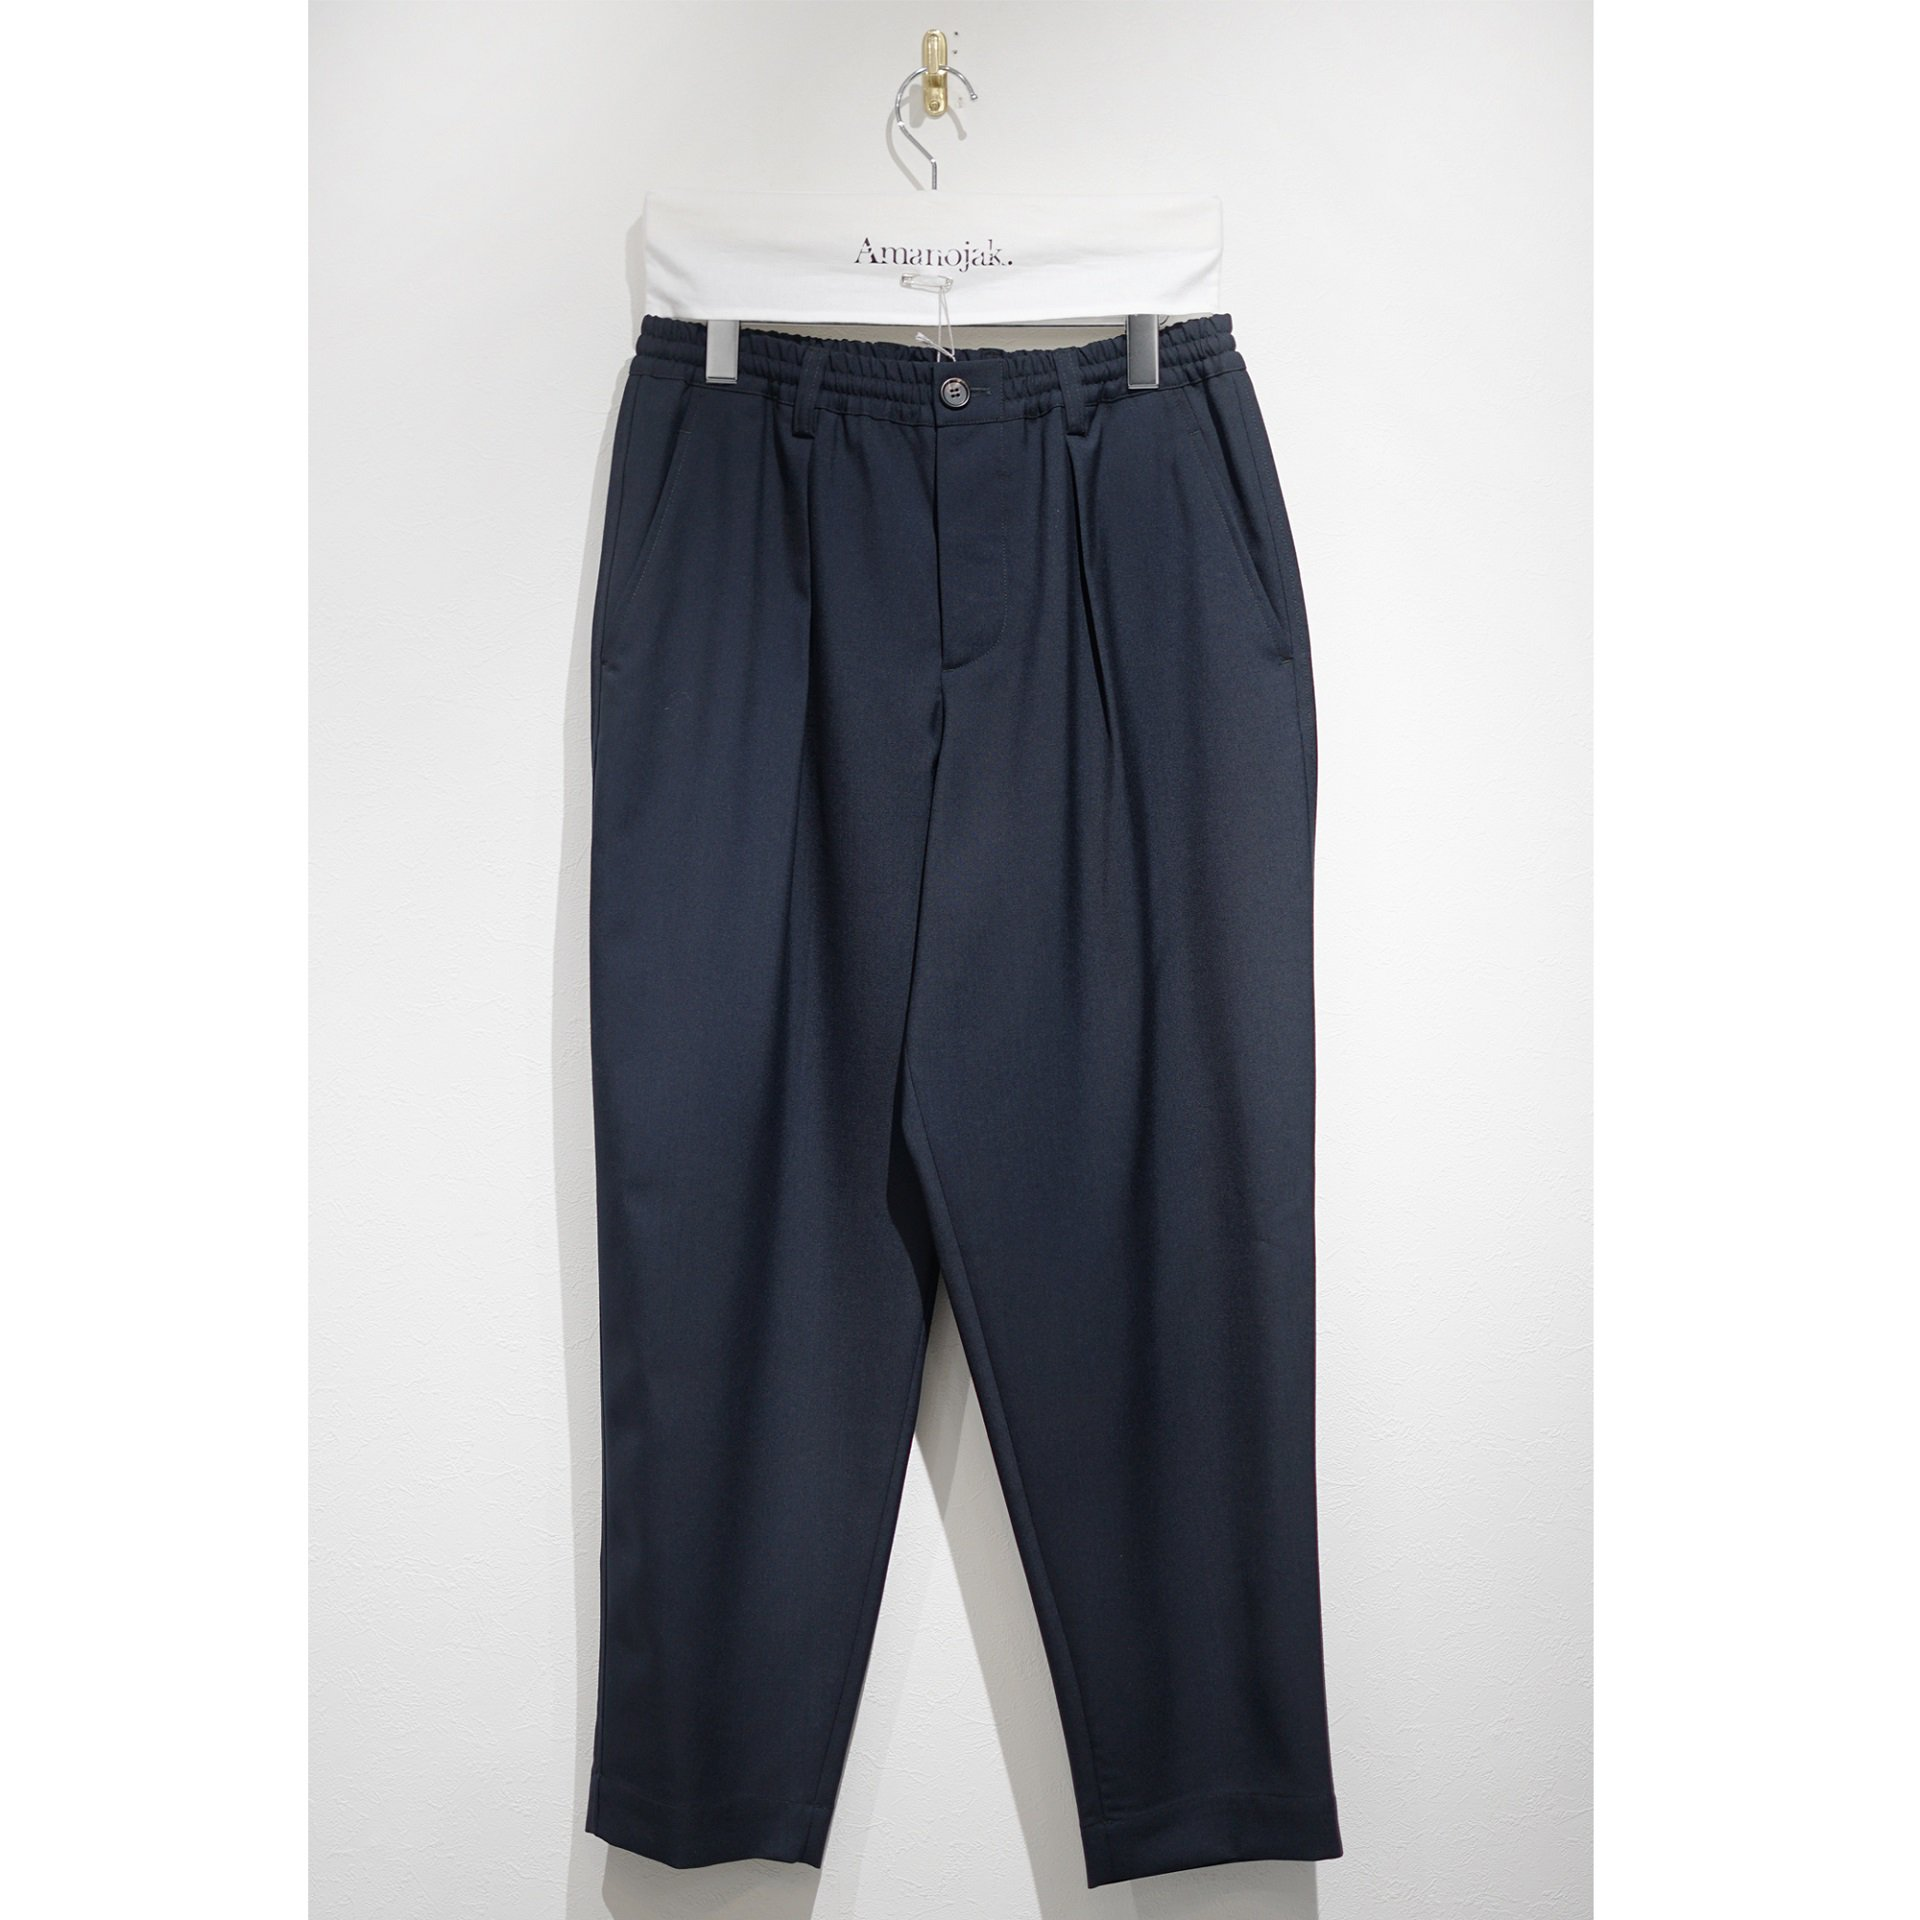 MARNI-EASY PANTS WOOSTED WOOL BLUE NAVY<br>(在庫なし)